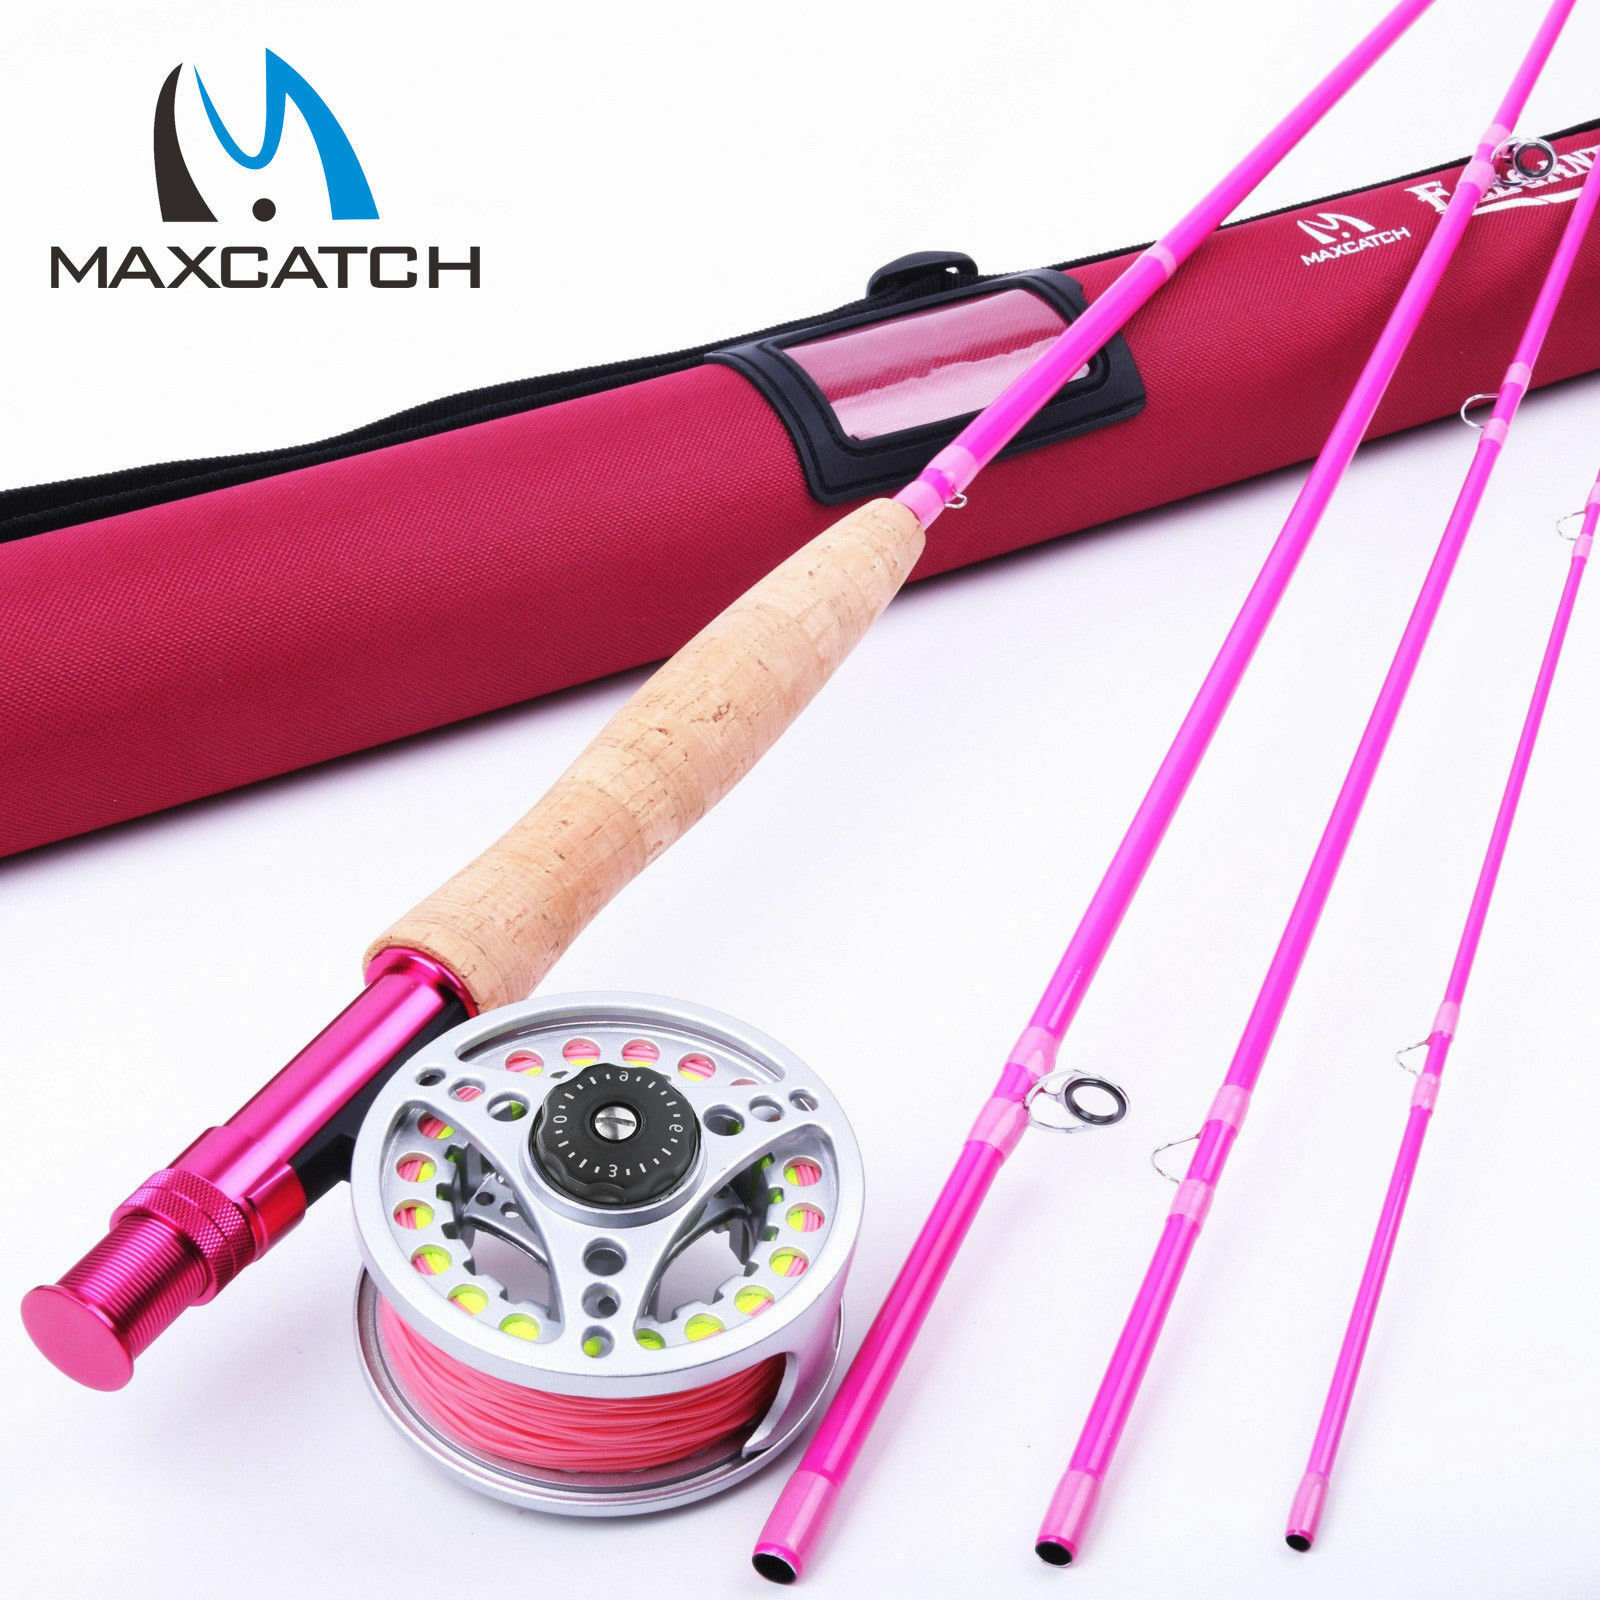 Maxcatch Hot Pink Fly Rod  and Reel Combo Kit 5WT 9FT YOUTH FLY FISHING Fly Line  cheap designer brands